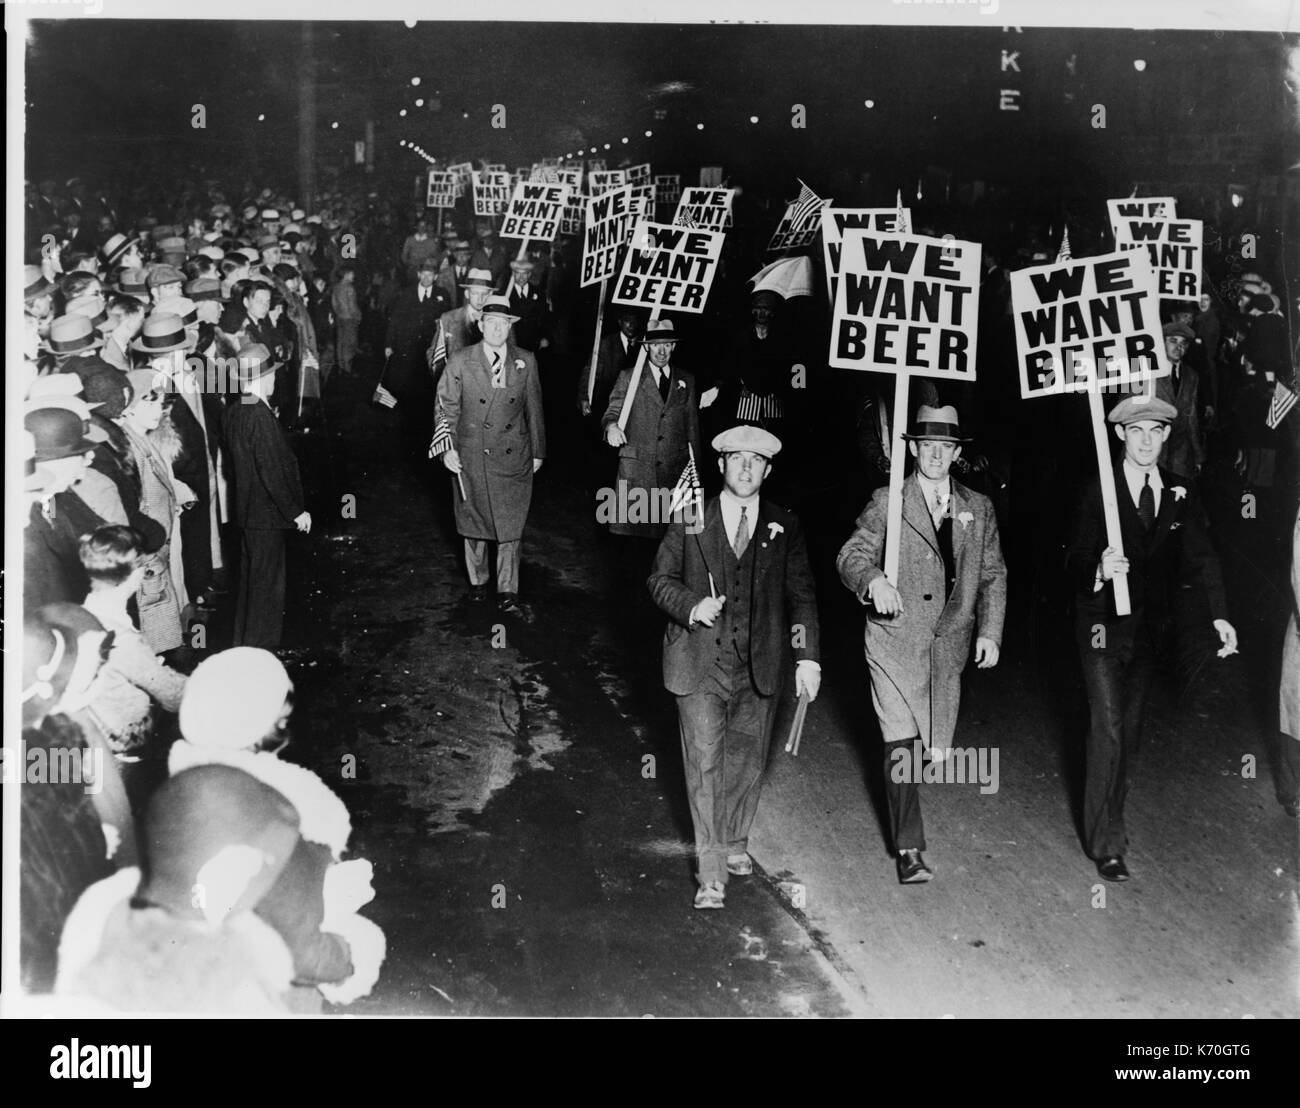 Labor union members marching through Broad Street, Newark New Jersey, carrying signs reading 'We want beer' in protest of prohibition. 1931, October 31. - Stock Image